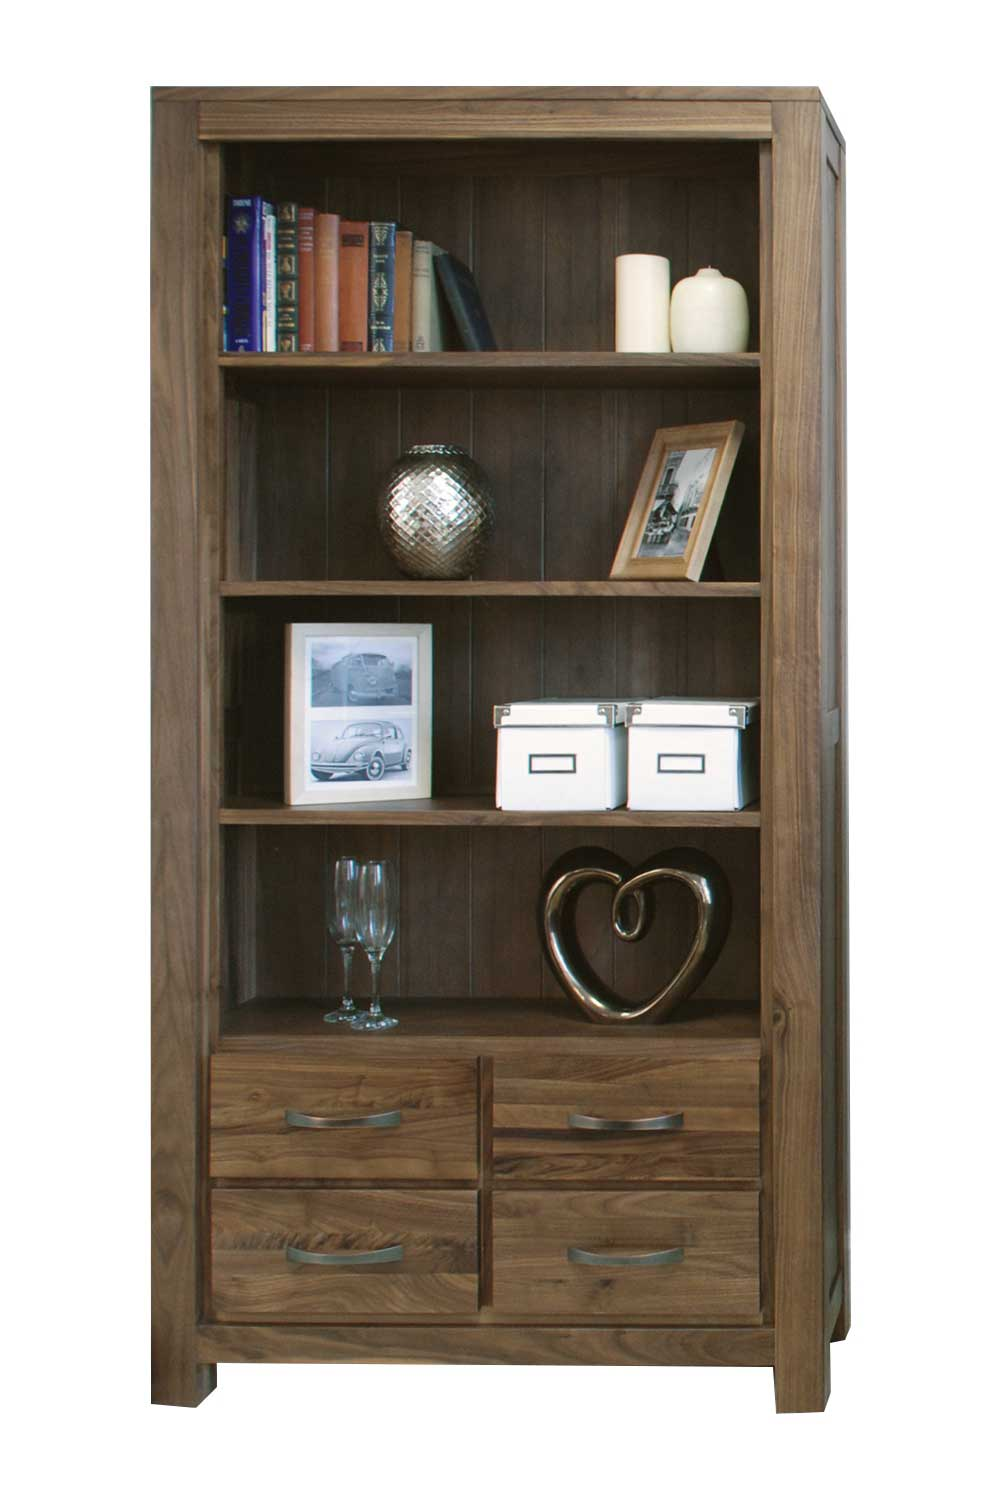 Image of: Walnut Bookcase with Drawers